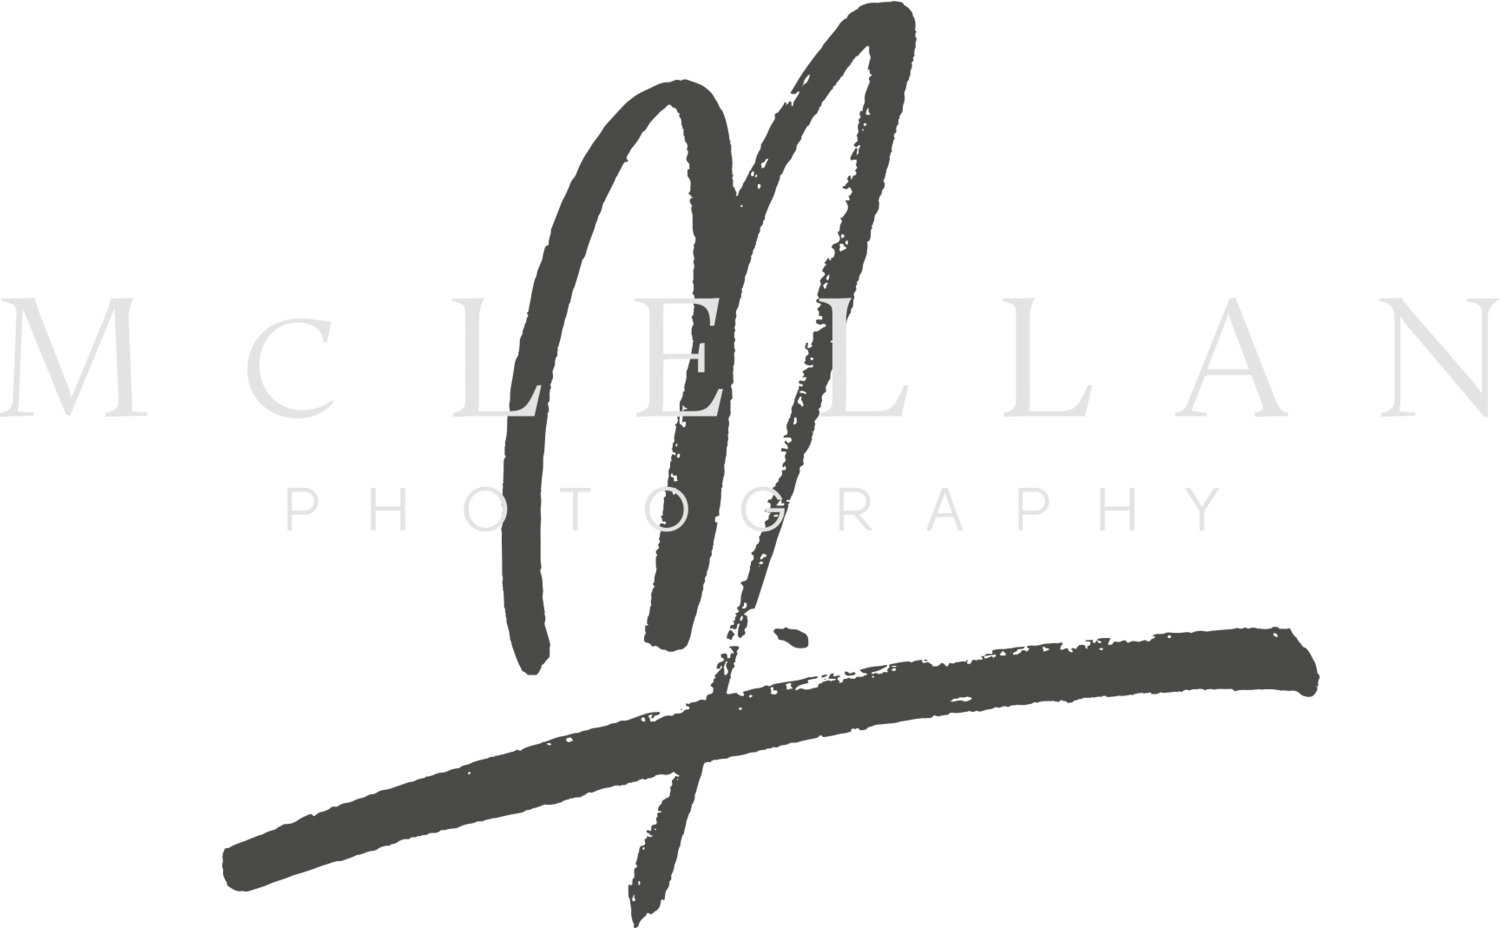 McLellan Photography